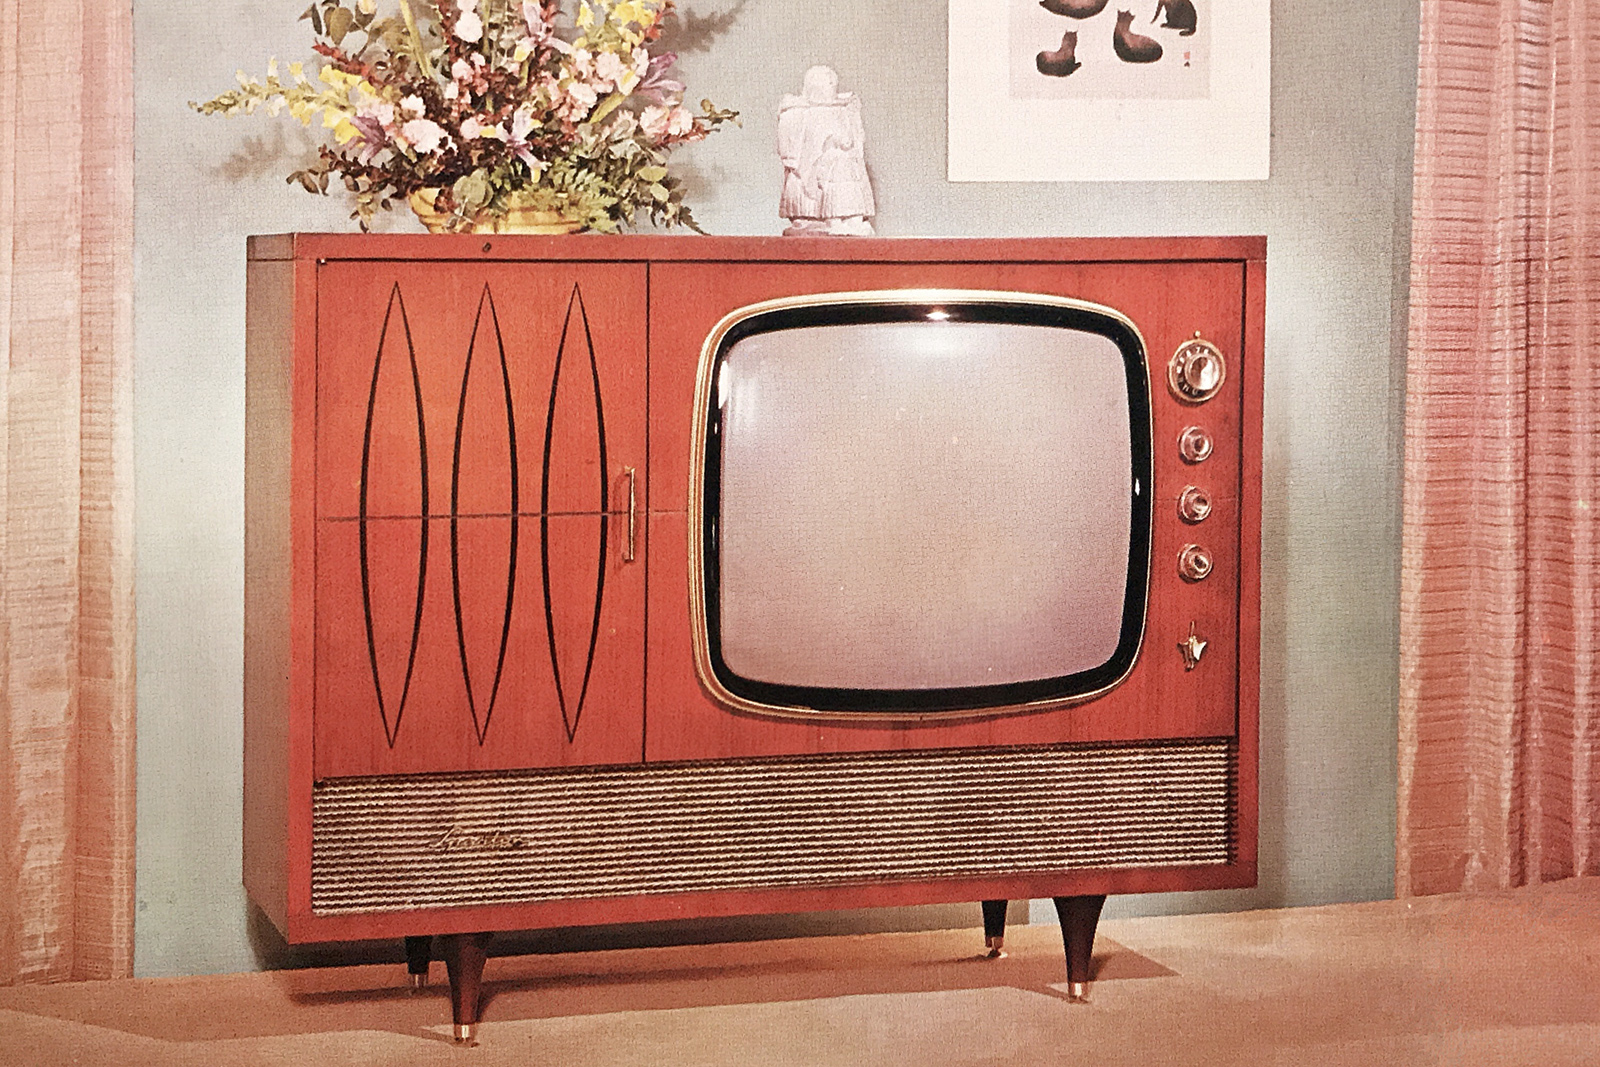 "Postcard description: 23"" TV chassis plus Hi-Fi automatic record changer - in one Deluxe, genuine wood cabinet. Available in either Eskimo or Tahitian design © Quantity Postcards 1997"